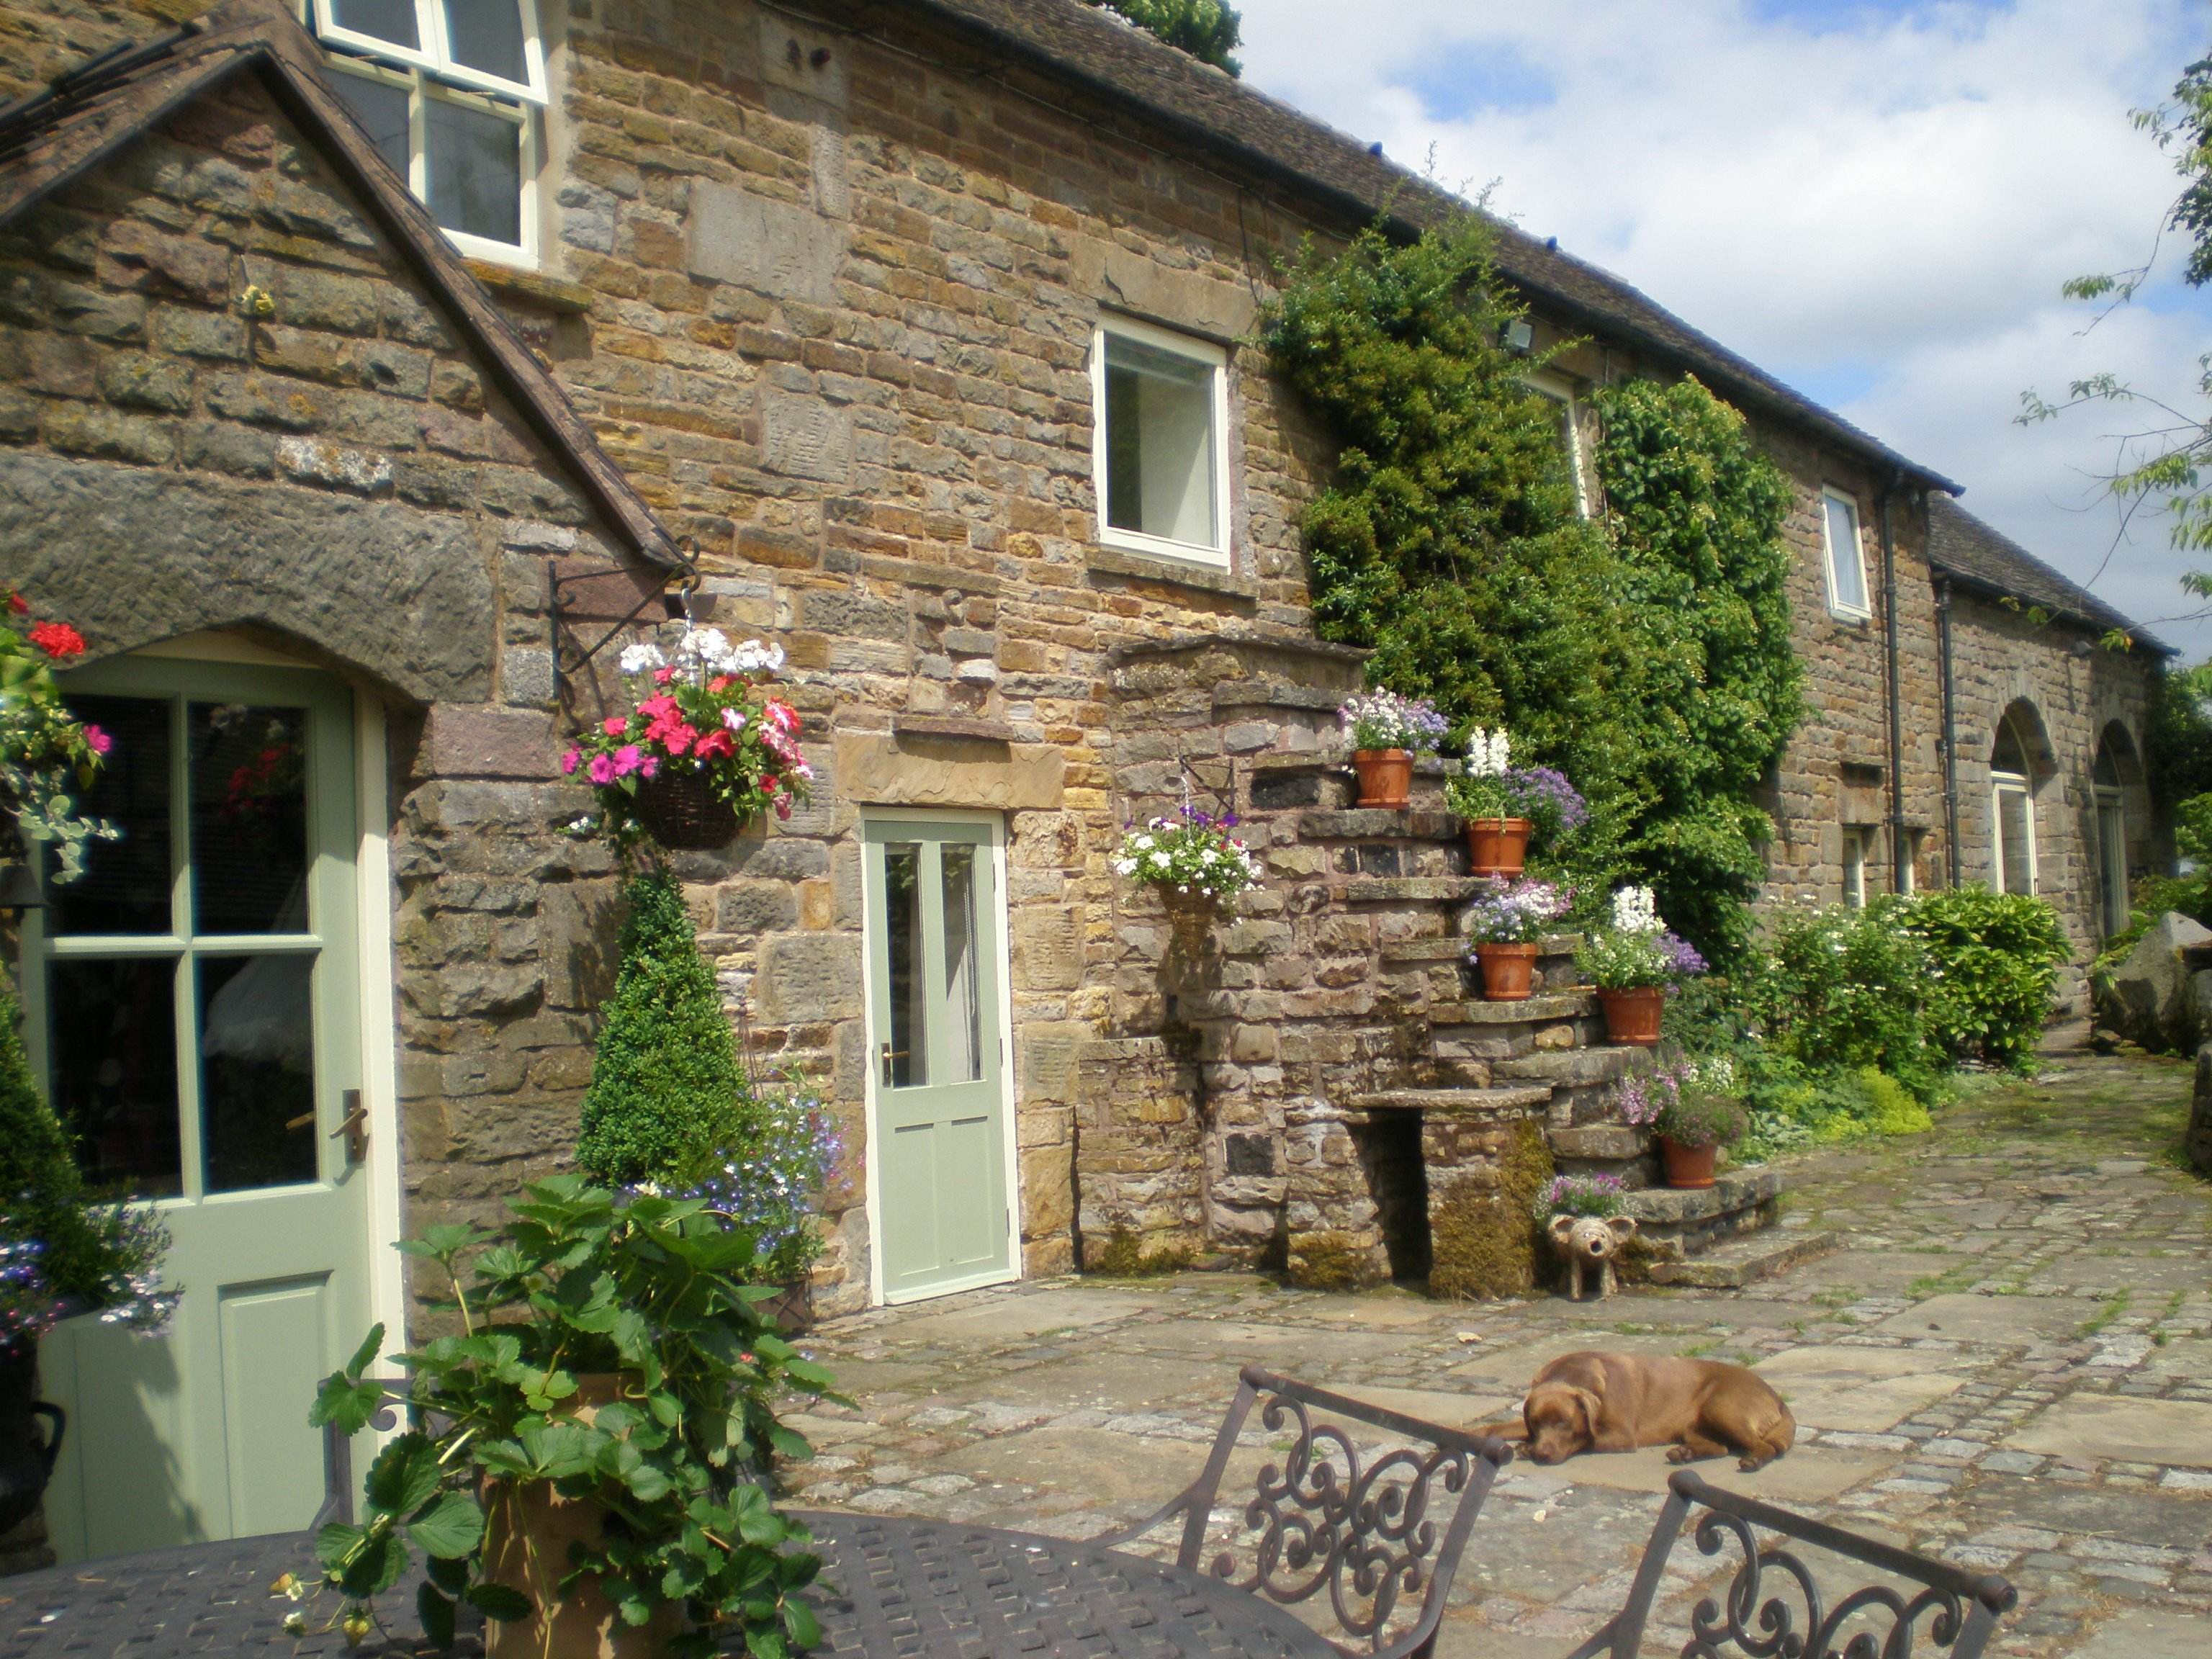 Self Catering Holiday Cottages In The Peak District Derbyshire Dales Butterton Moor House